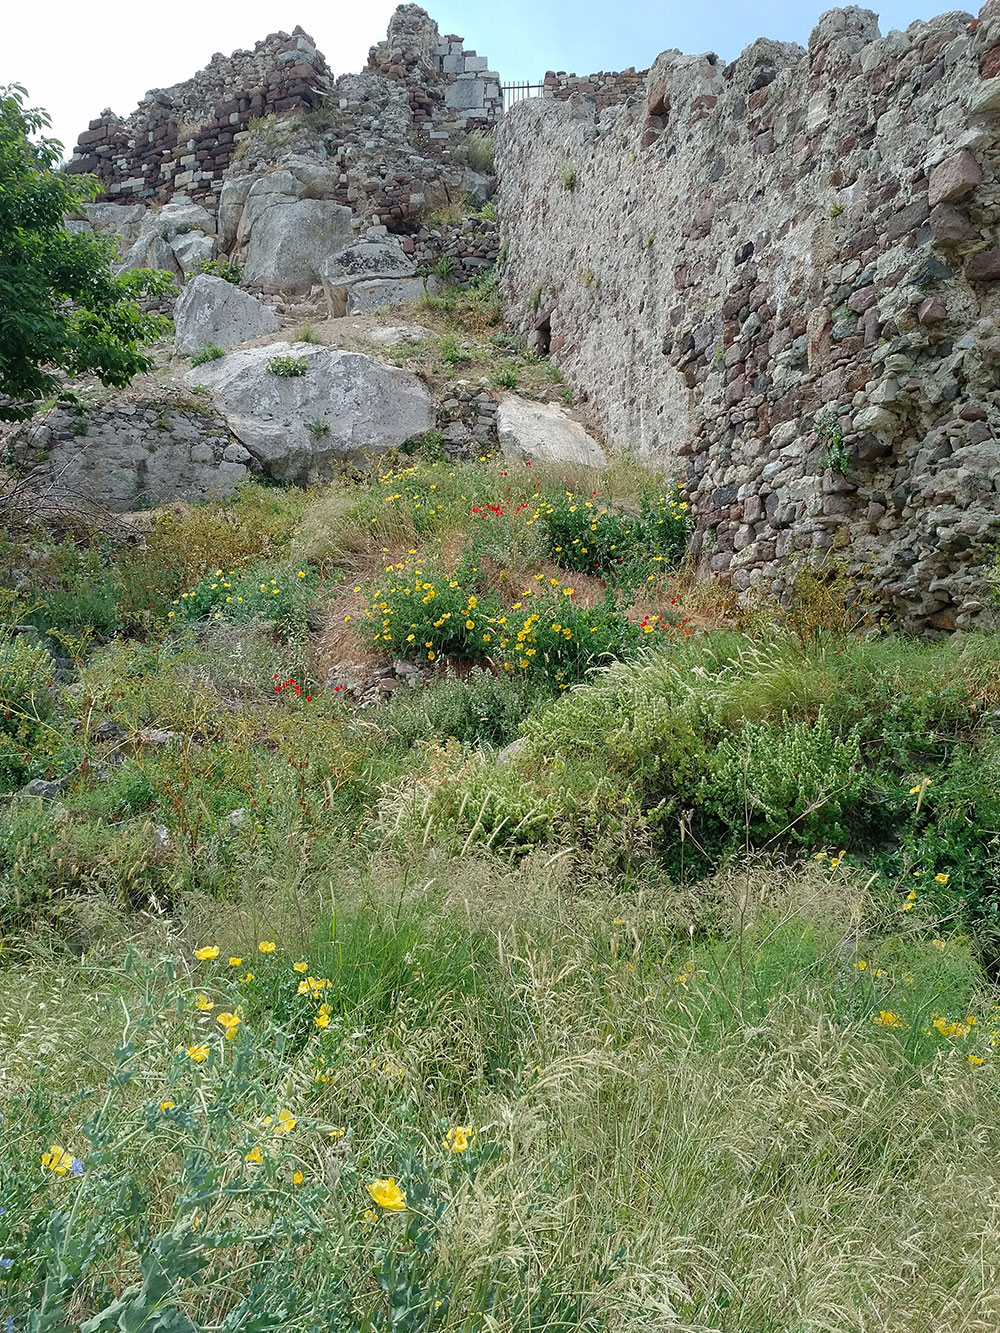 Wonderful rocky outcrops, abounding with wild flowers…